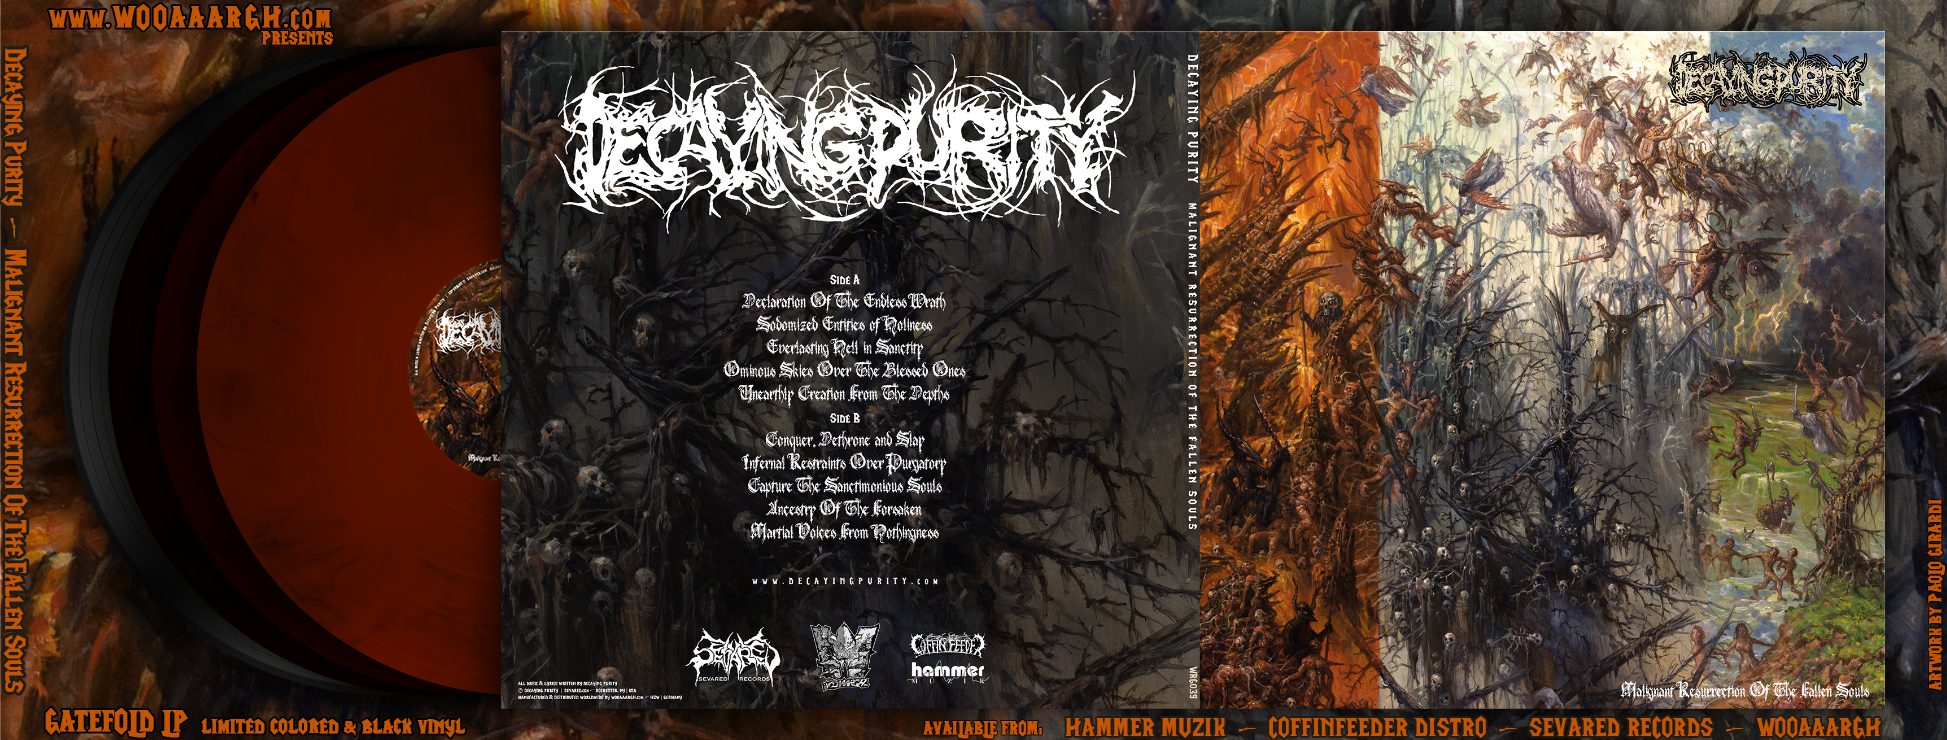 Decaying_Purity_LP_banner